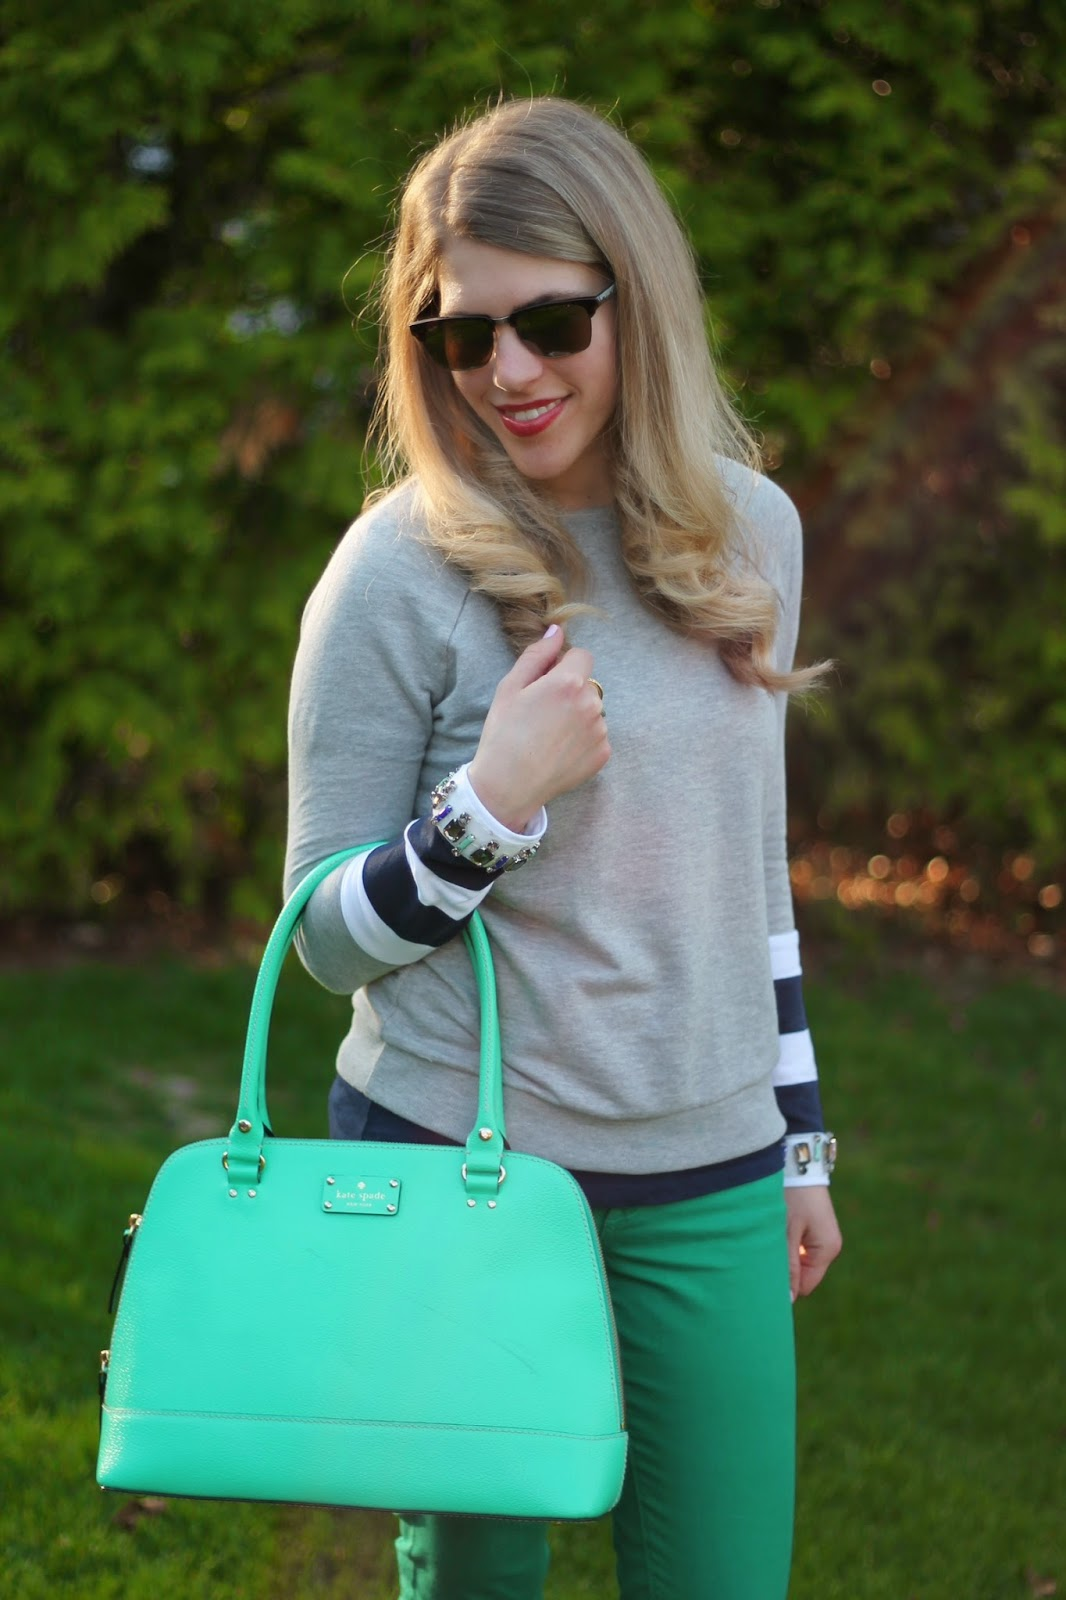 jewel embellished grey sweatshirt, green jeans, striped flats, mint kate spade bag